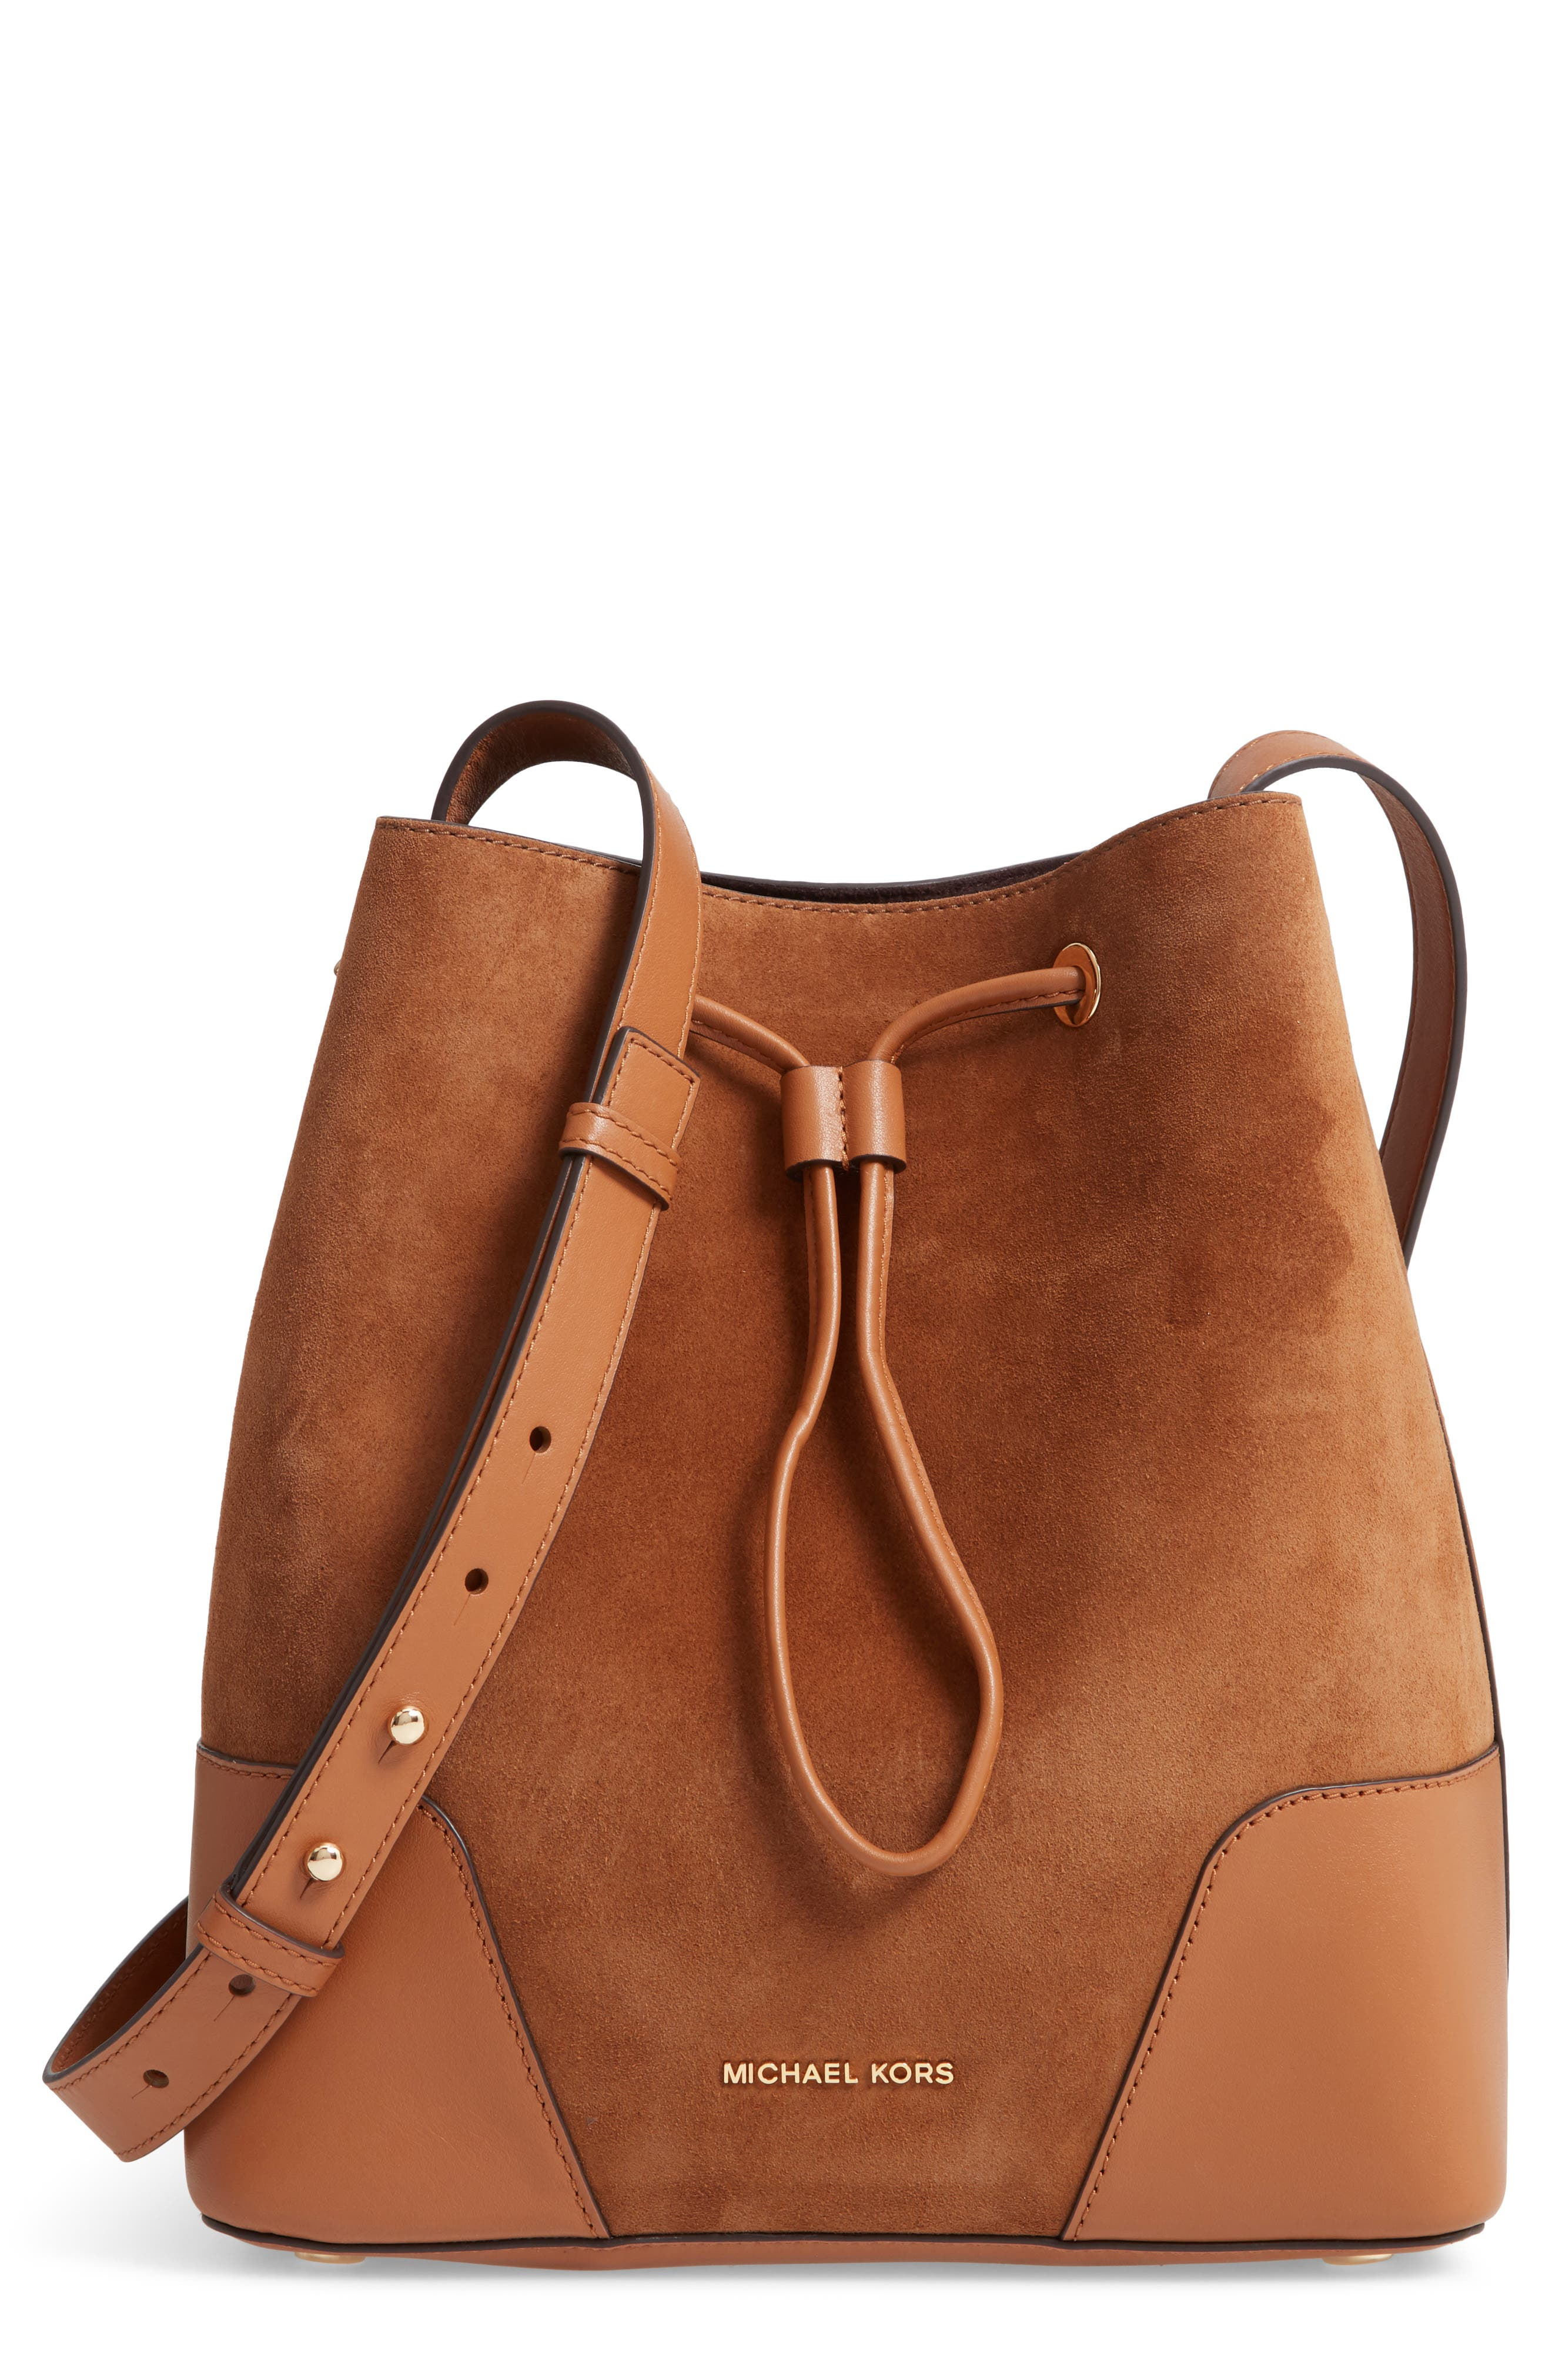 Cary Leather & Suede Bucket Bag,                         Main,                         color,